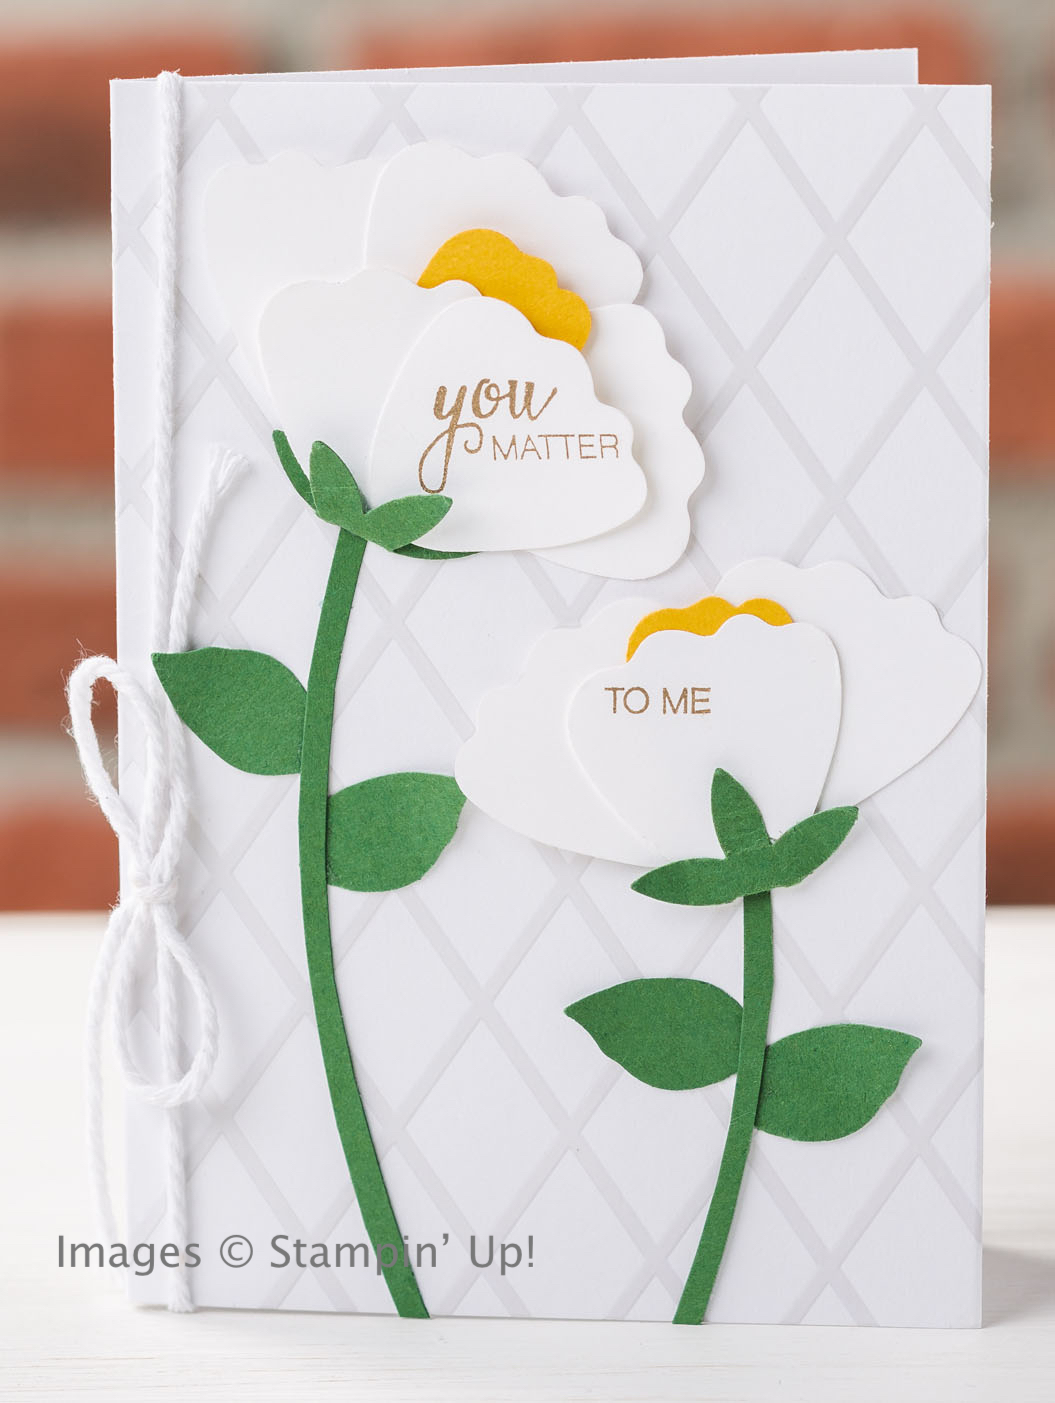 Save 25% when you purchase Blossom Builder Punch from Stampin' Up!, 1 week only!